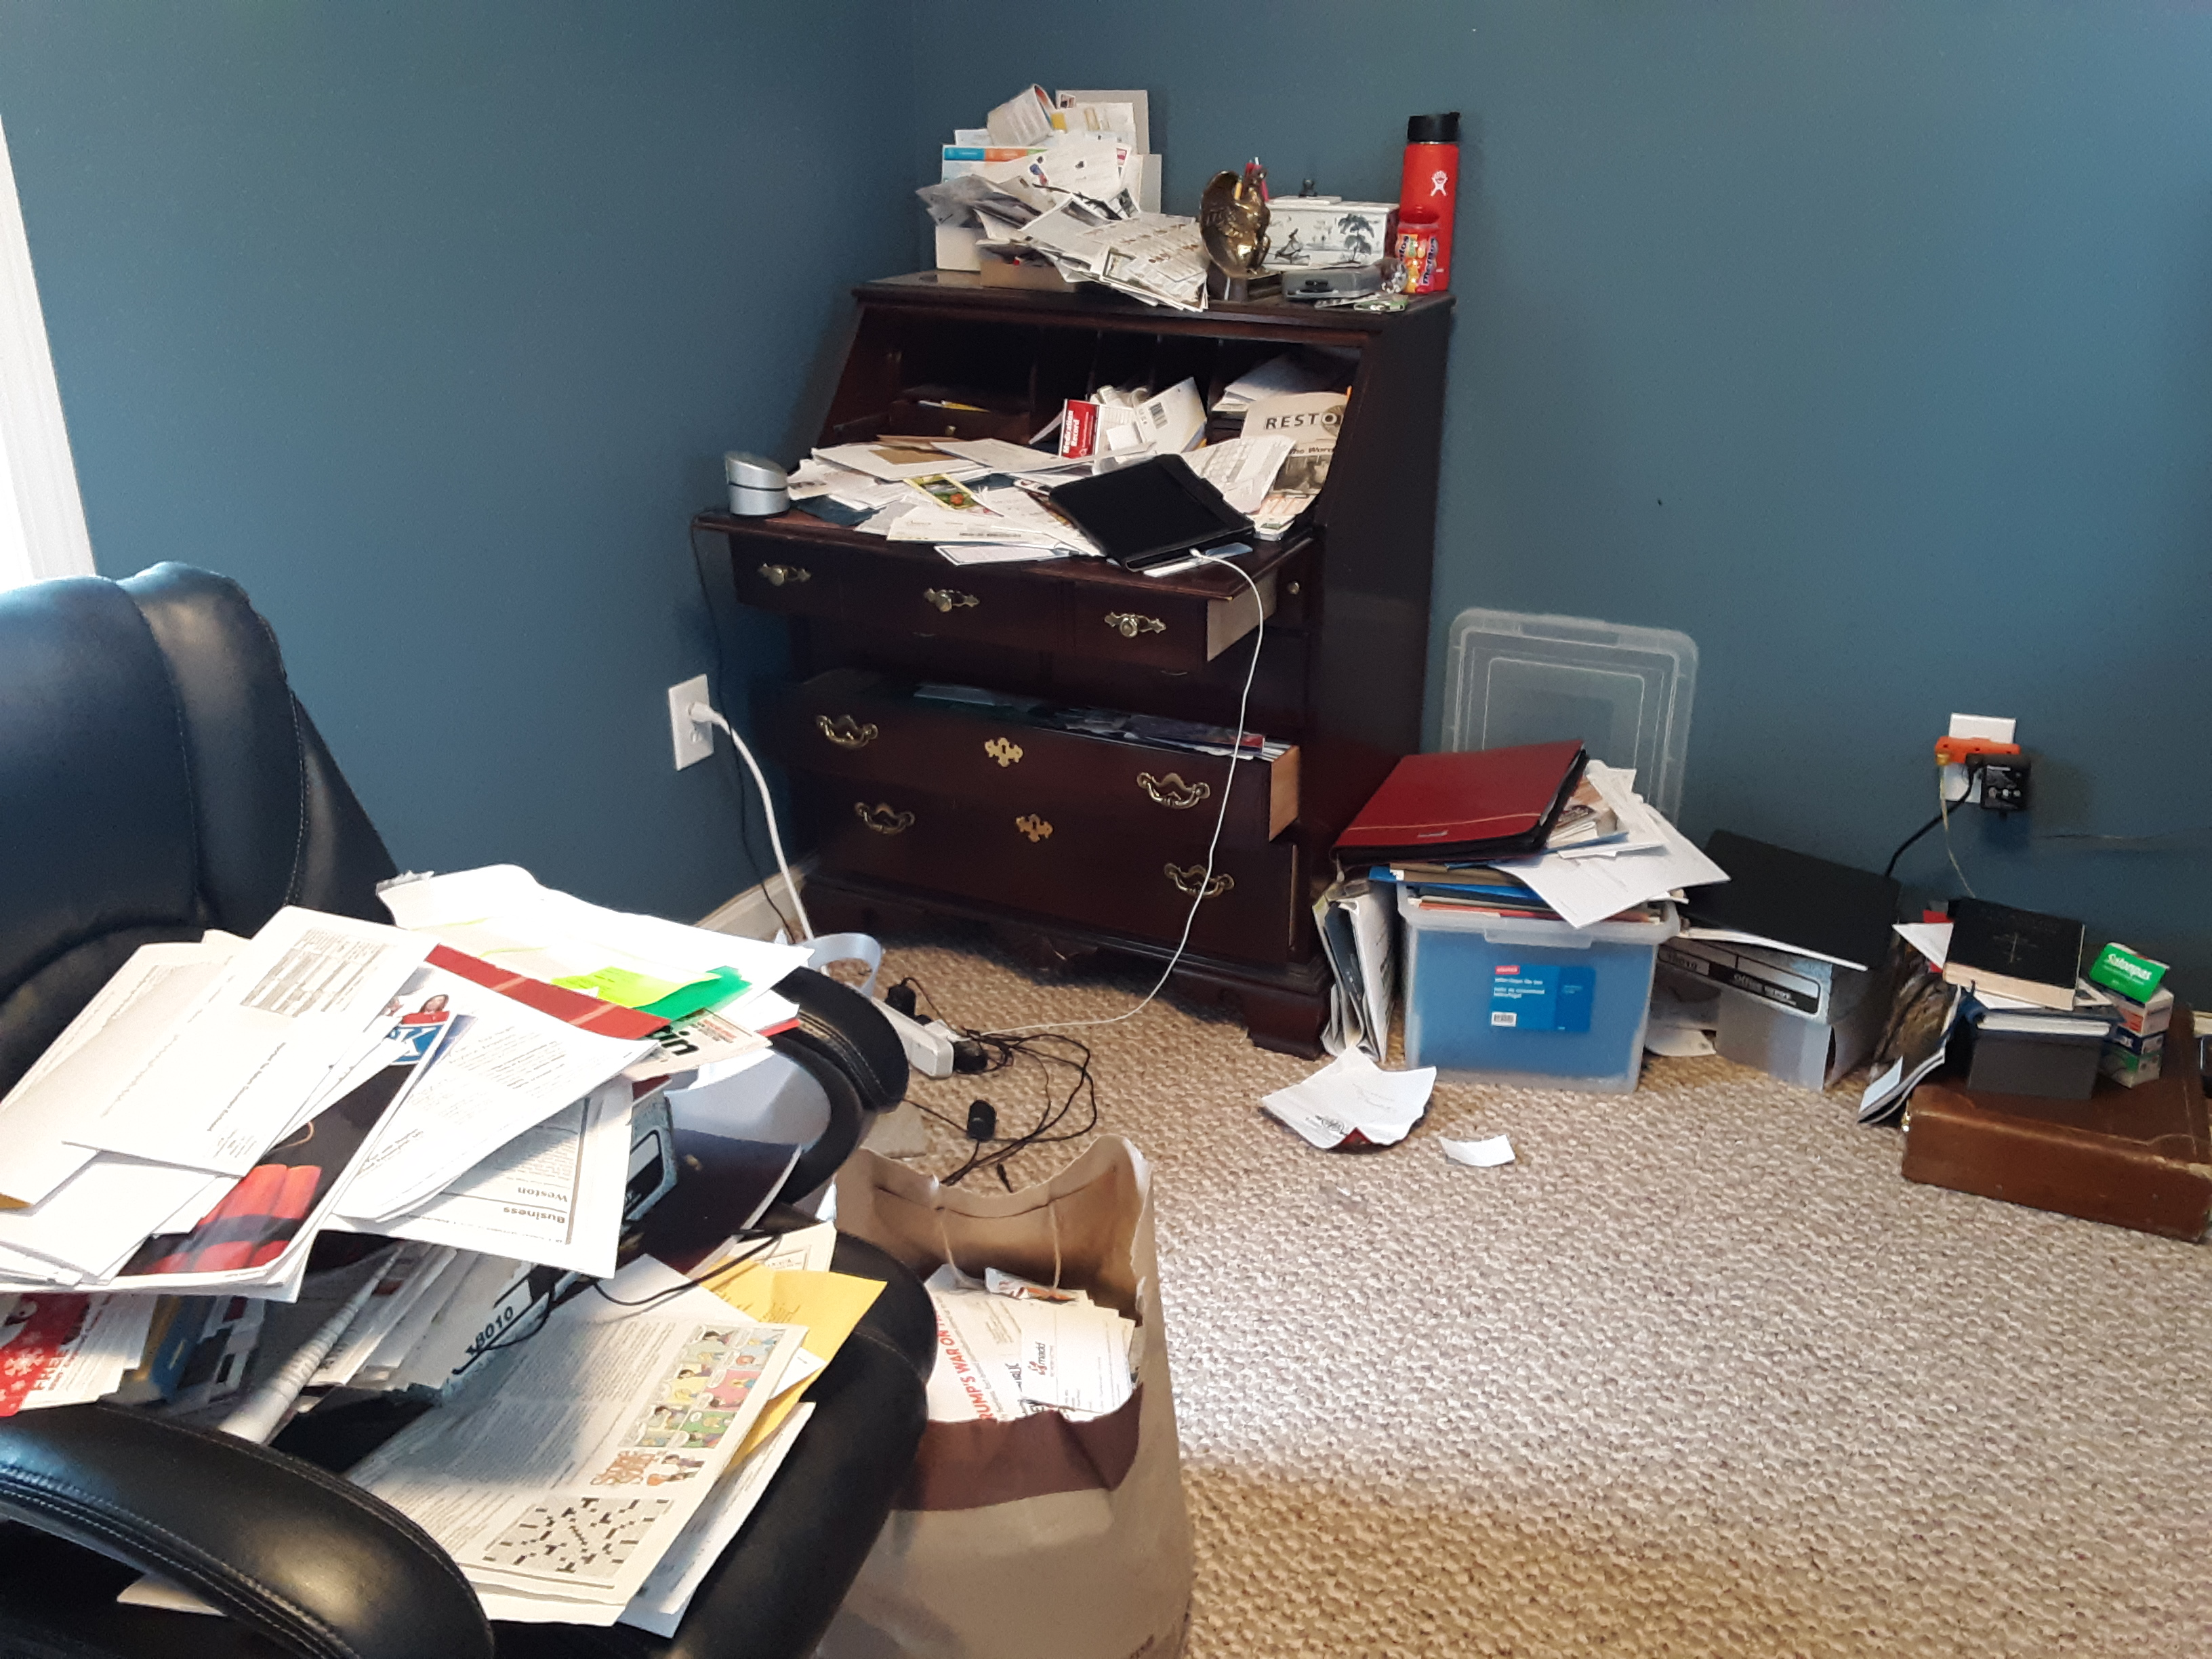 The home office secretary before we cleared its clutter